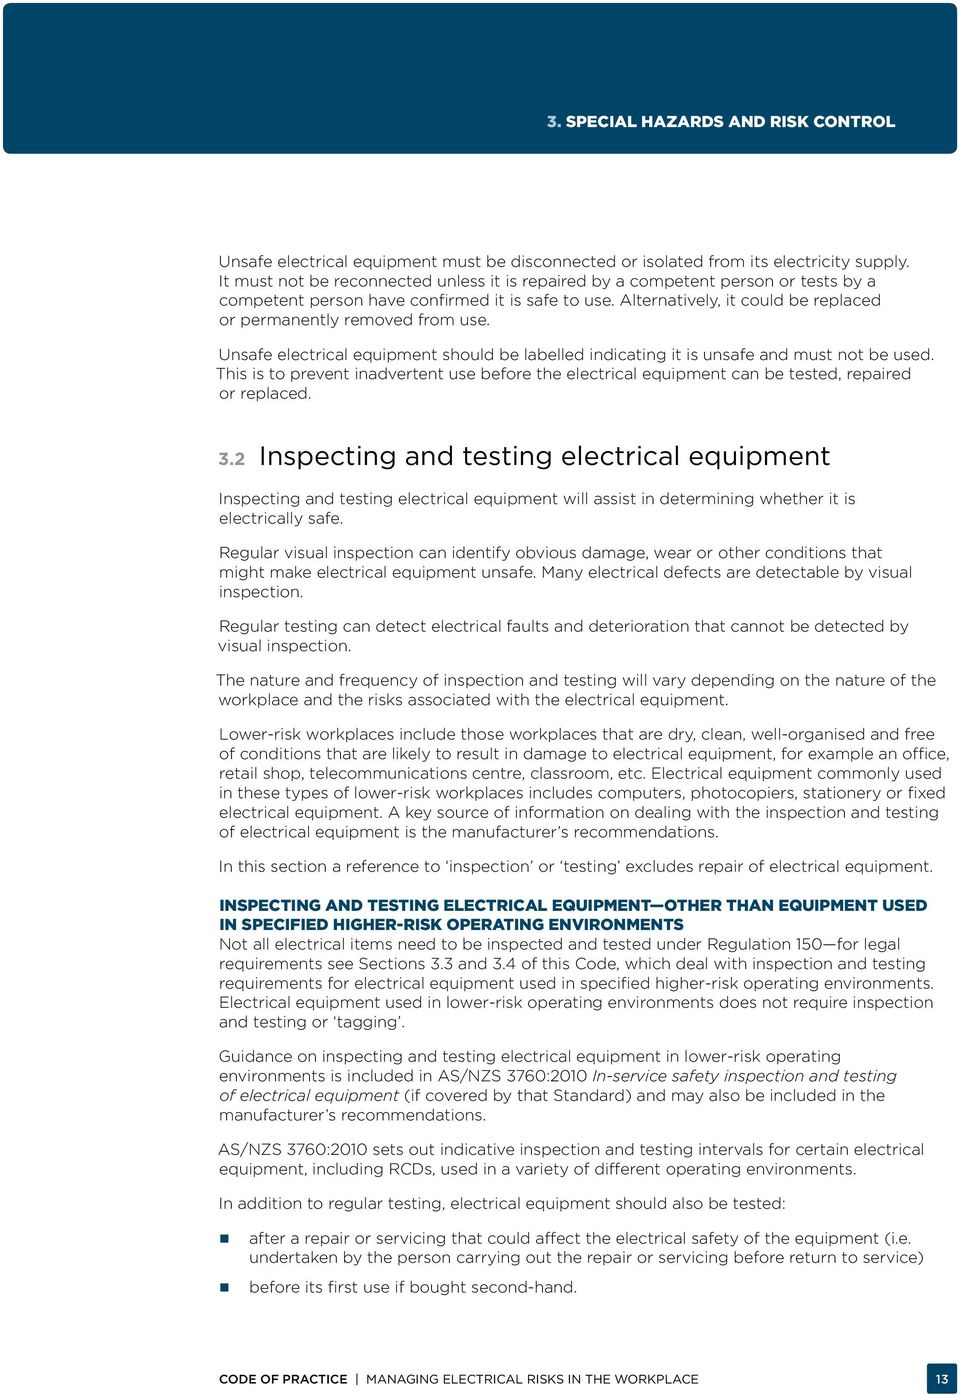 Alternatively, it could be replaced or permanently removed from use. Unsafe electrical equipment should be labelled indicating it is unsafe and must not be used.